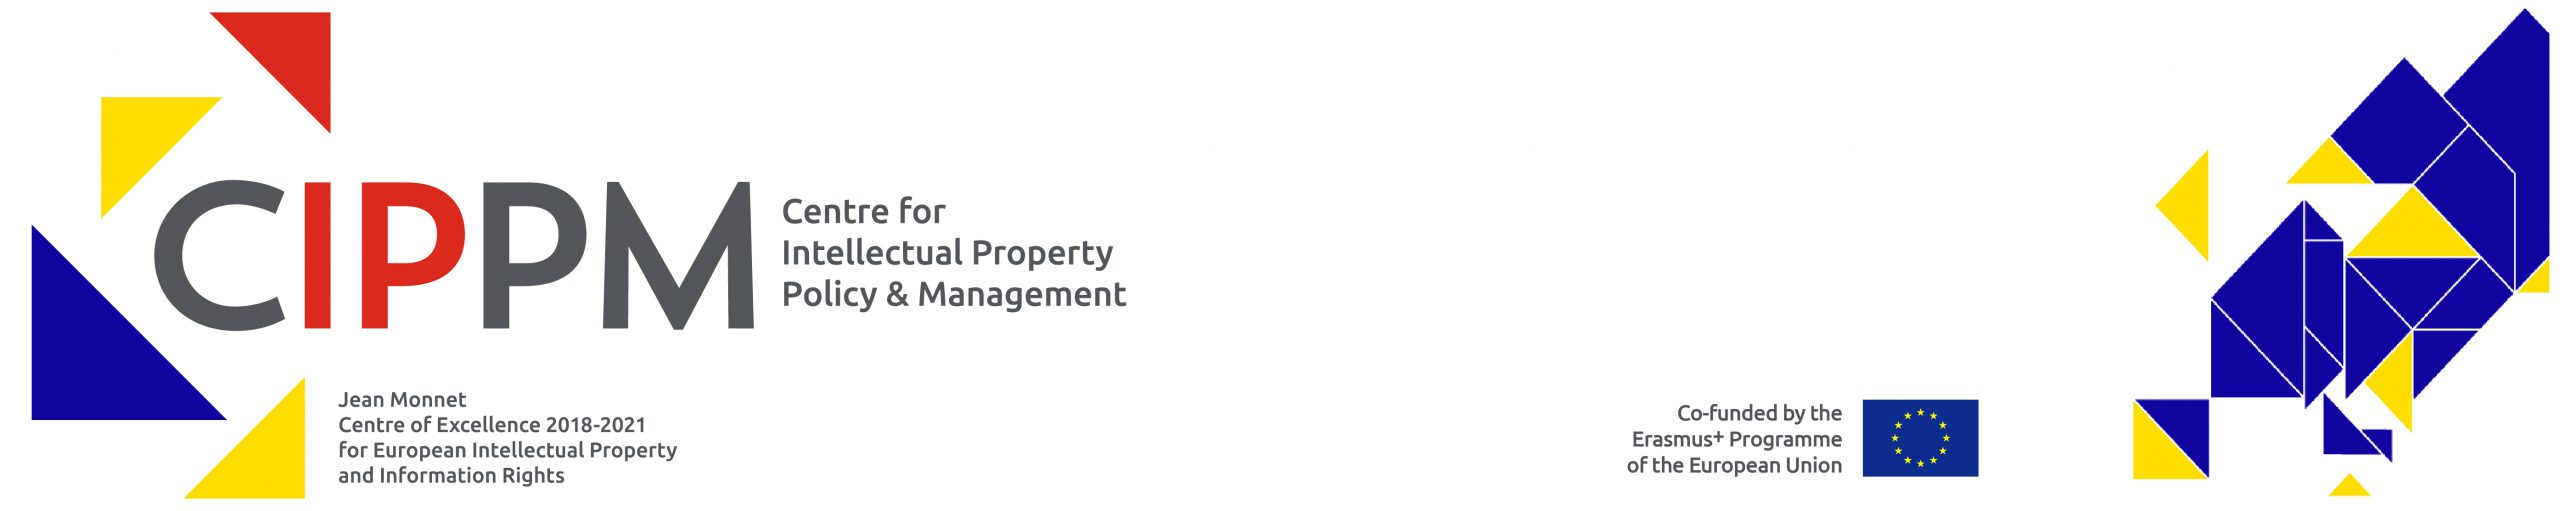 CIPPM: Centre for Intellectual Property Policy & Management